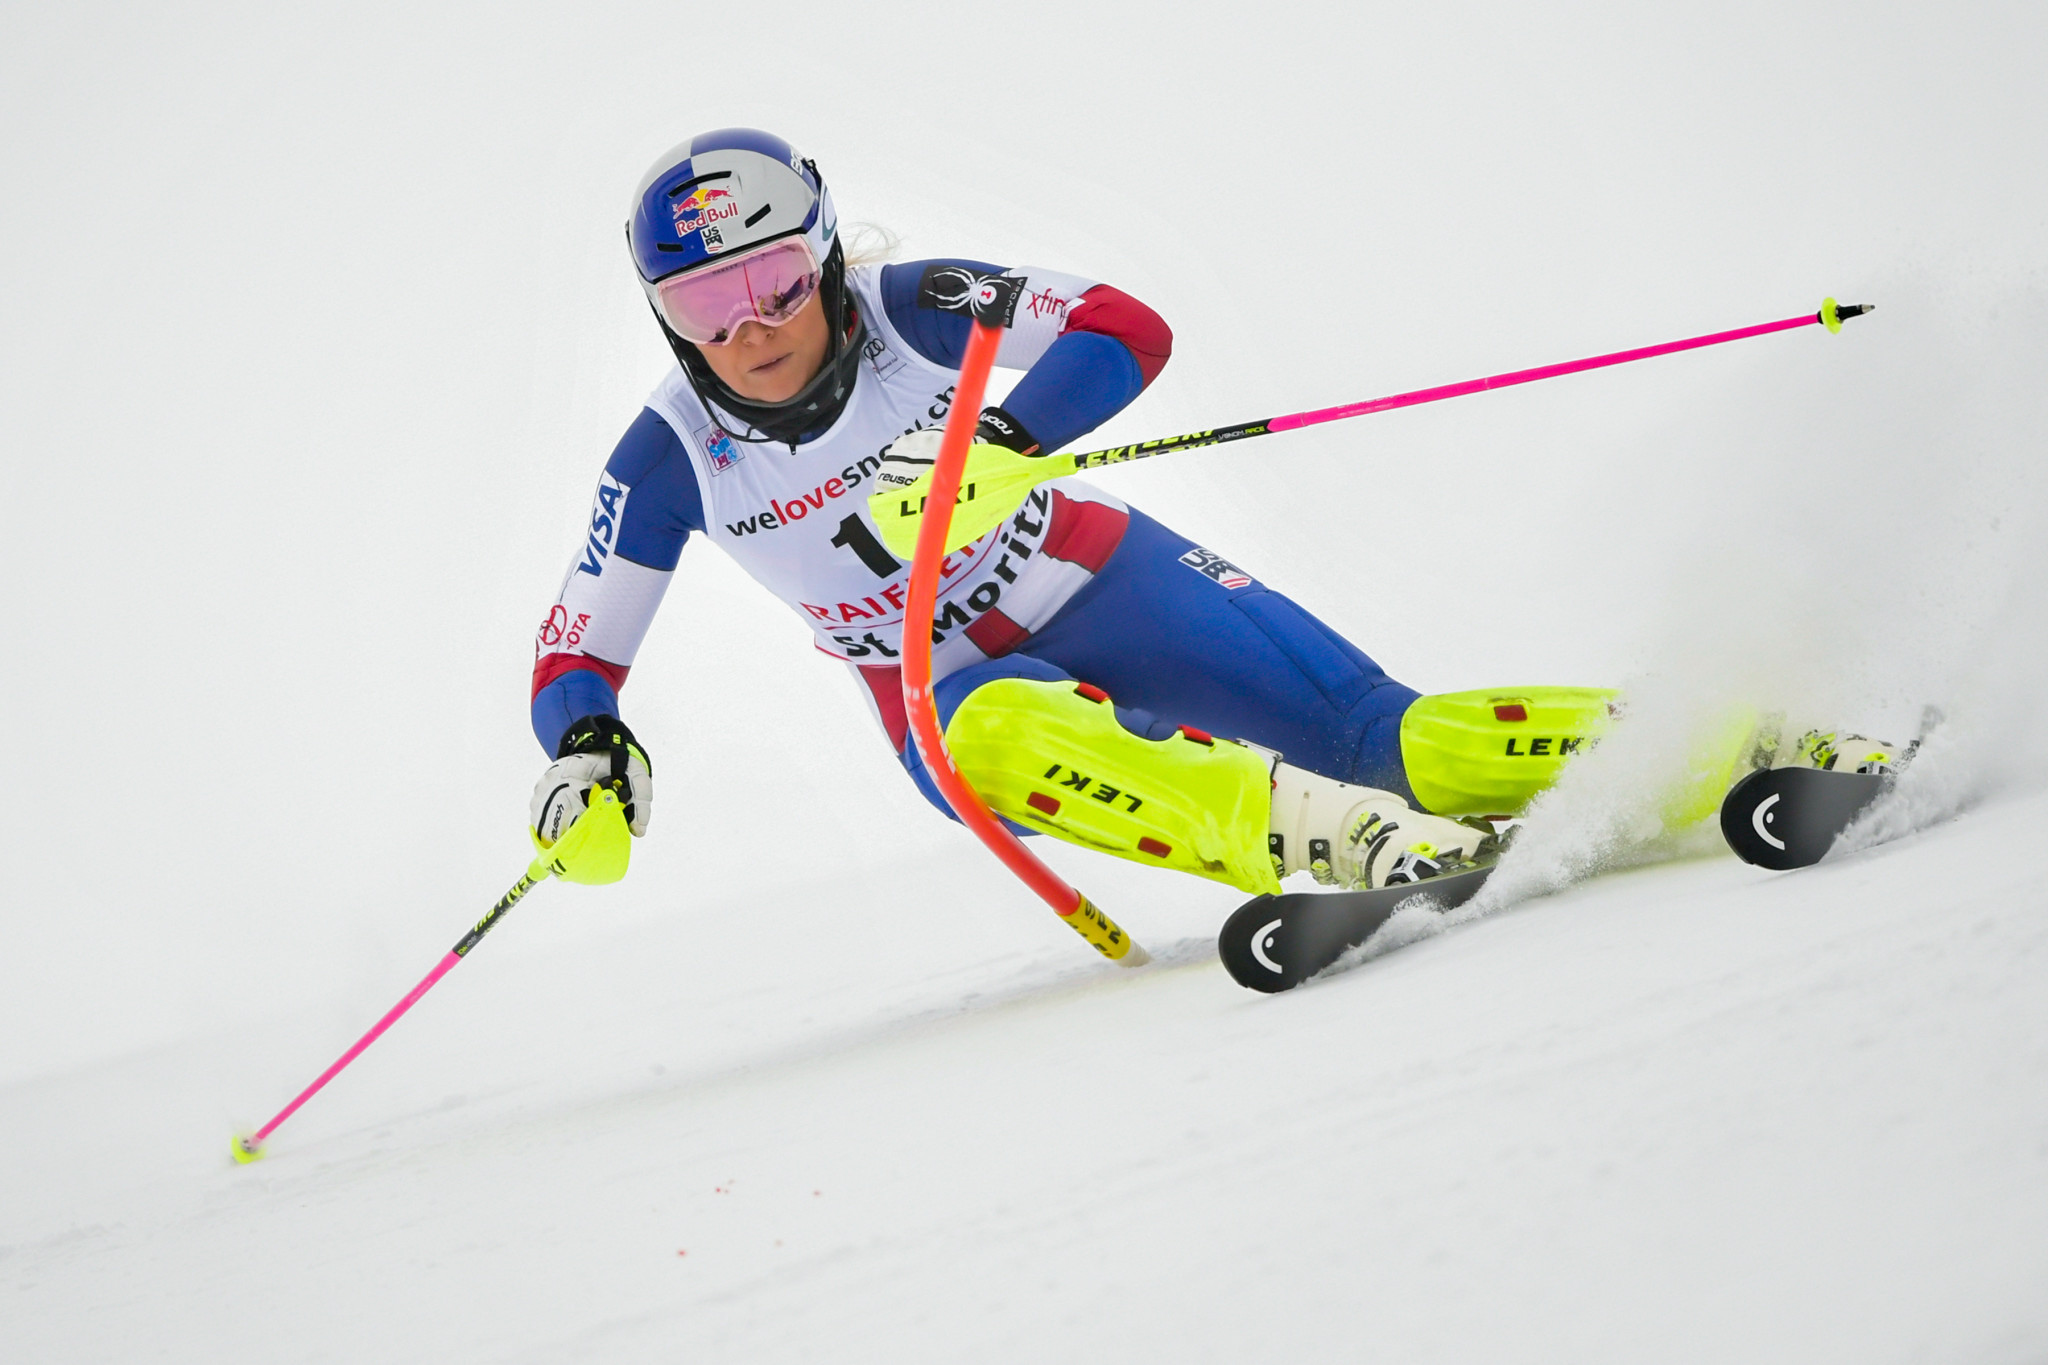 Vonn claims hopes to be better representative for US than Trump at Pyeongchang 2018